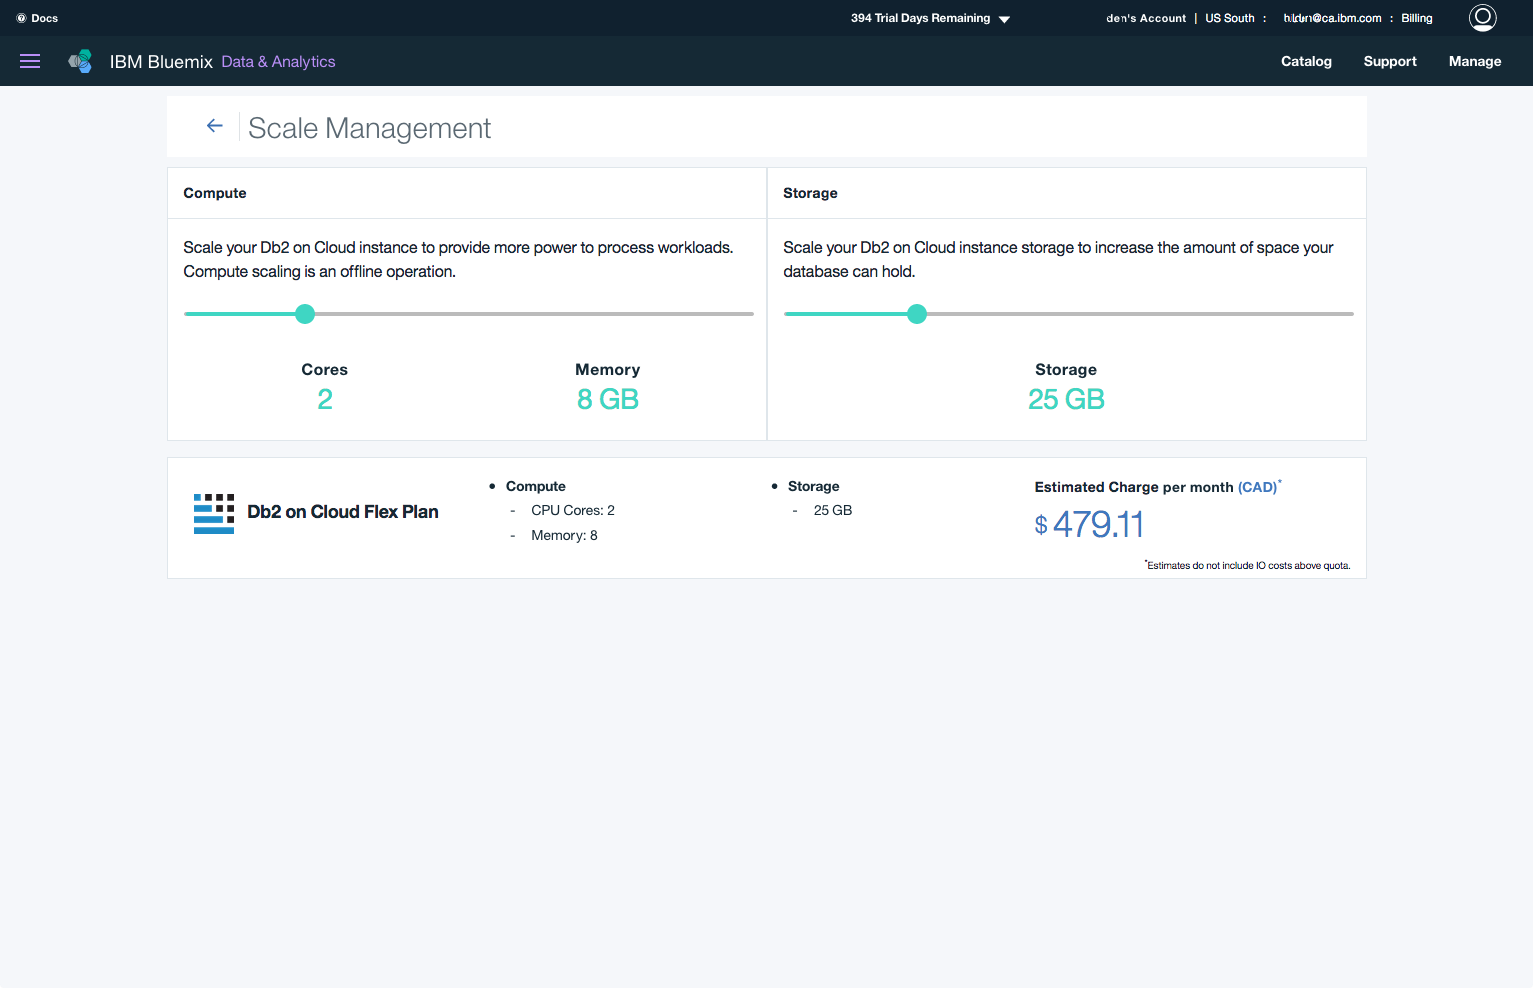 image of product interface showing how to scale your cloud database on-demand